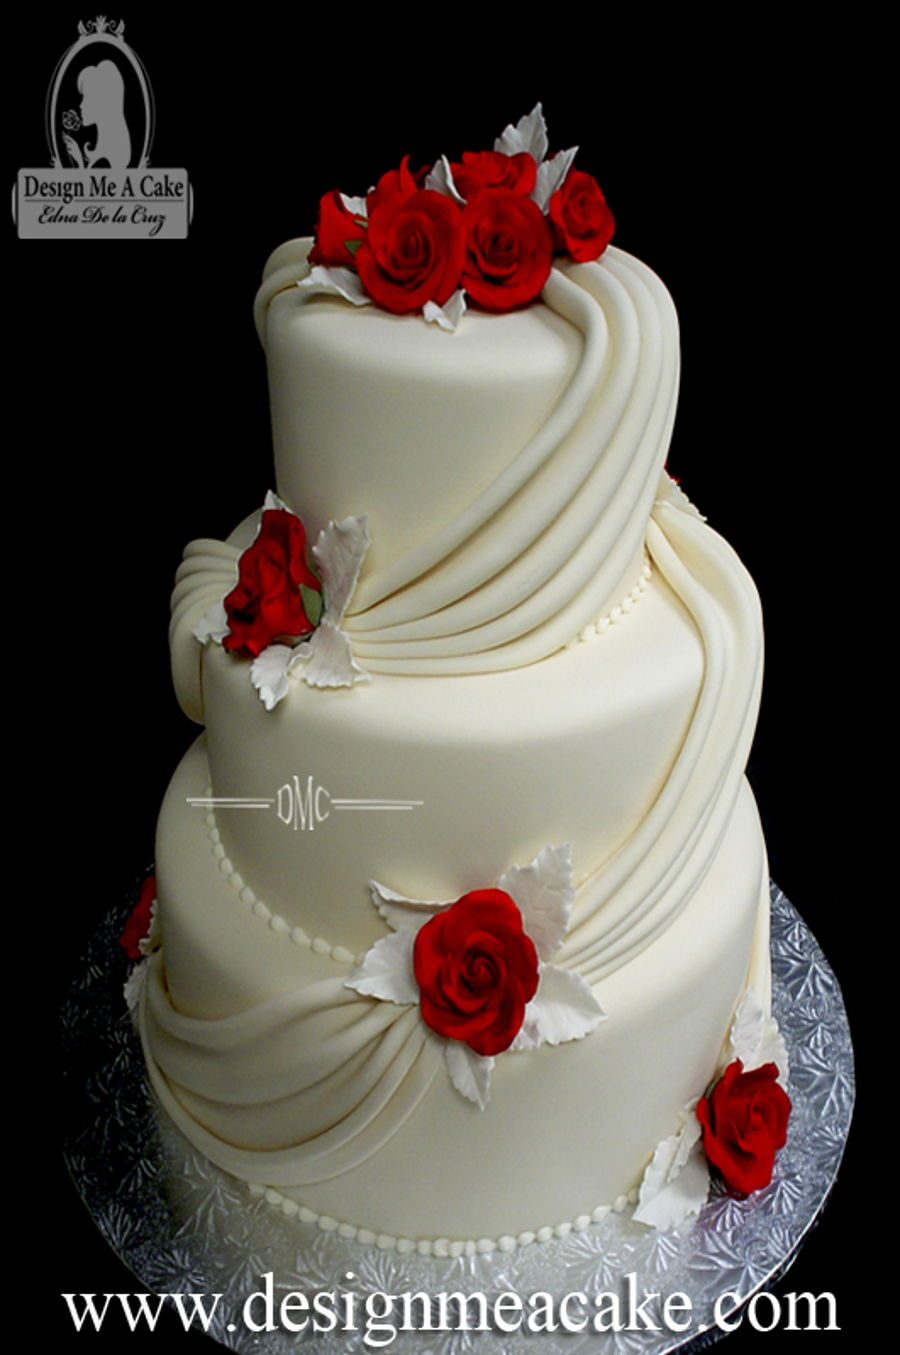 Red Roses And Drapes.  on Cake Central